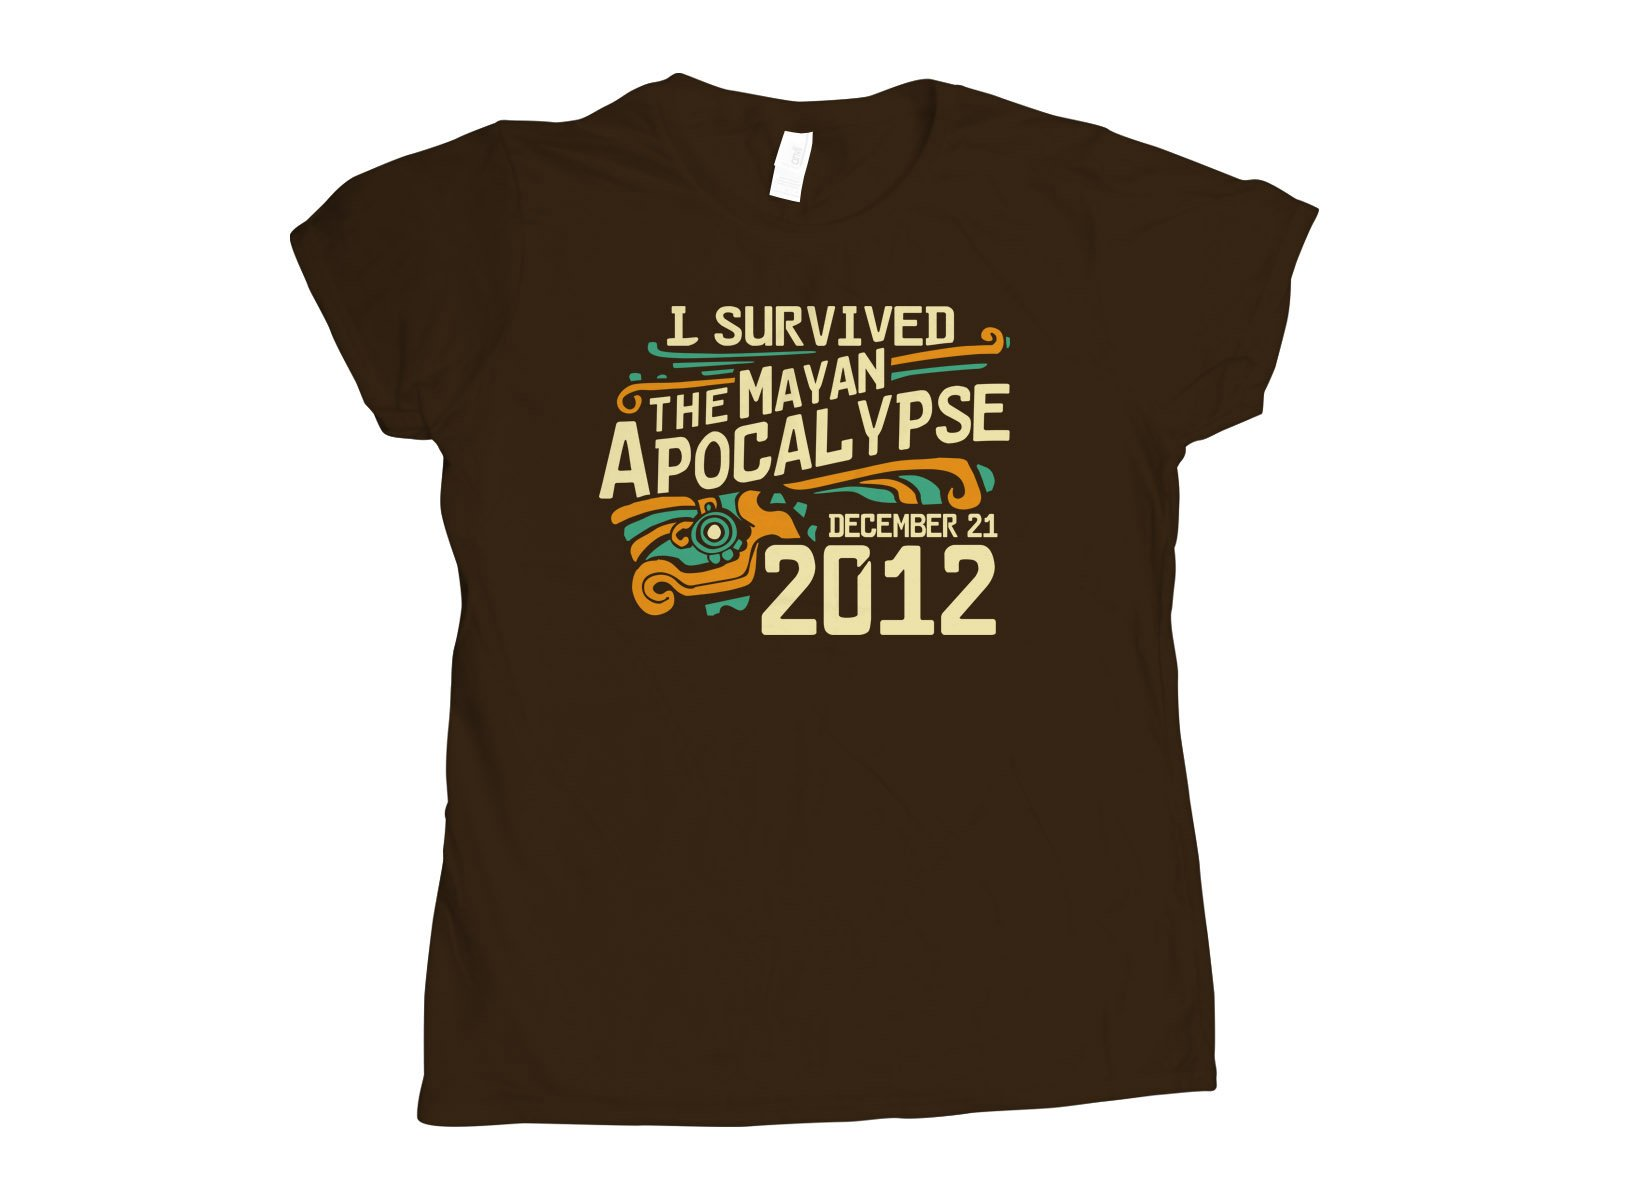 I Survived The Mayan Apocalypse on Womens T-Shirt